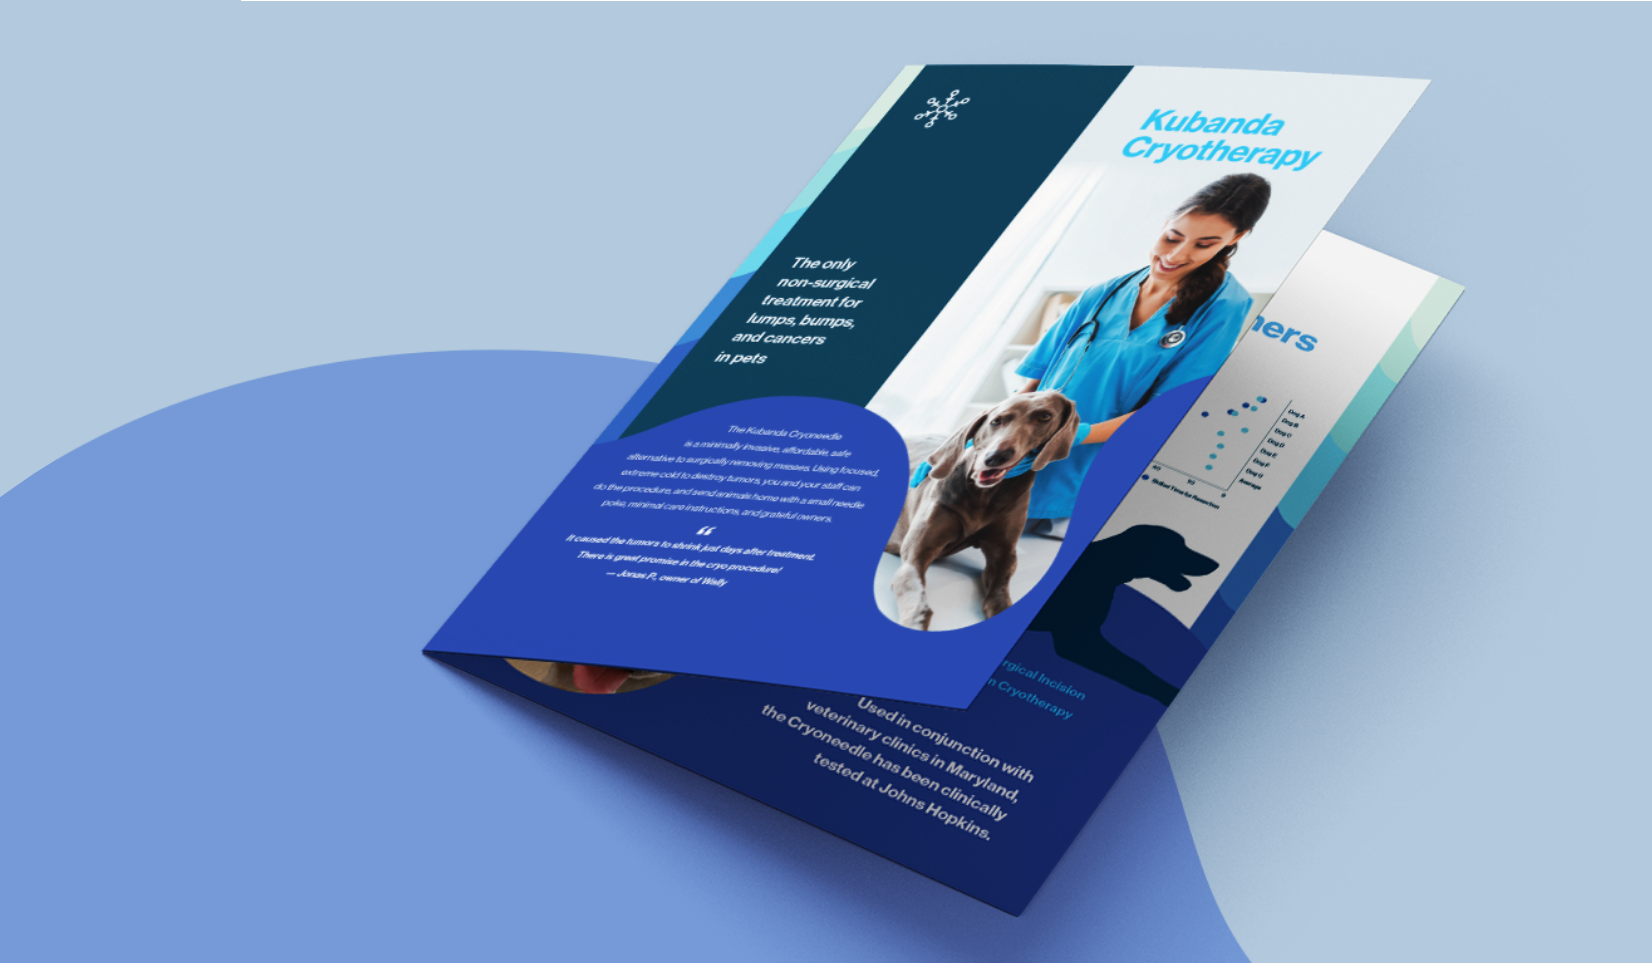 Propr Agency's Kubanda Cryotherapy Brand Strategy, Print & Digital Design, Copywriting